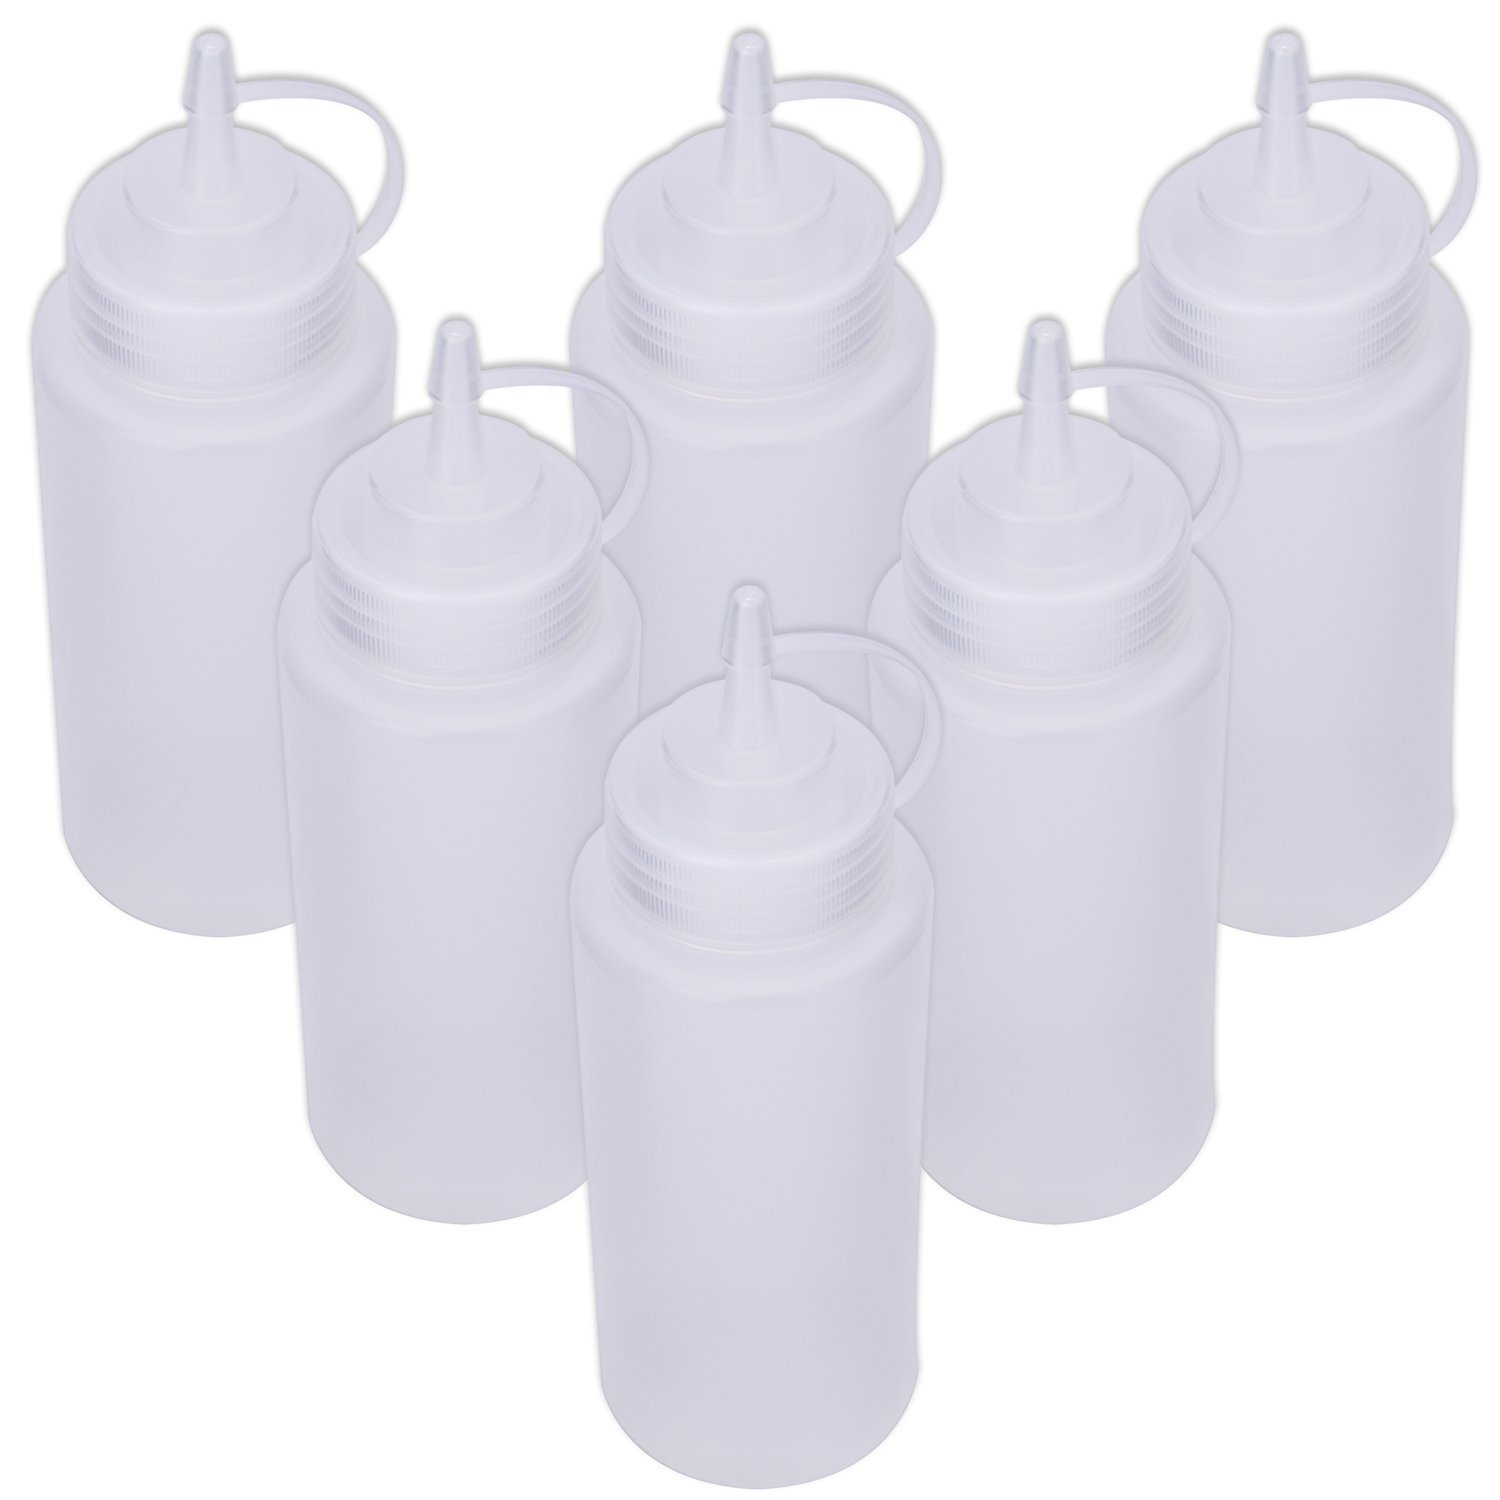 Squeeze Bottle Set [5-Pack] with Tip Cap, Plastic Squirt Bottles with Cap for Sauce/Condiment Dispenser (150ml) Food Dispensers-150ml